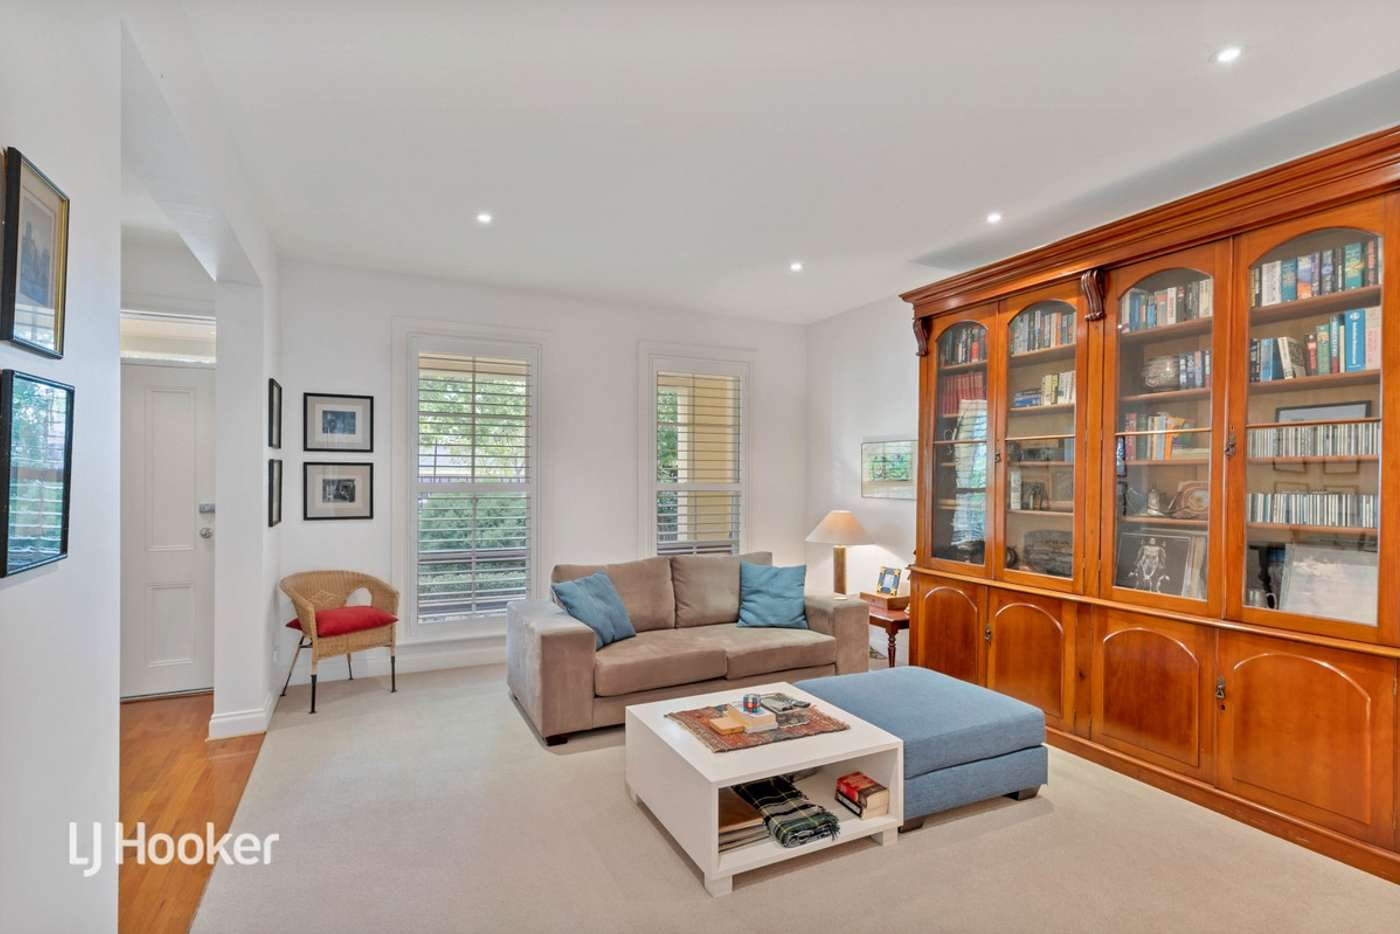 Sixth view of Homely house listing, 2/14 Osmond Terrace, Norwood SA 5067